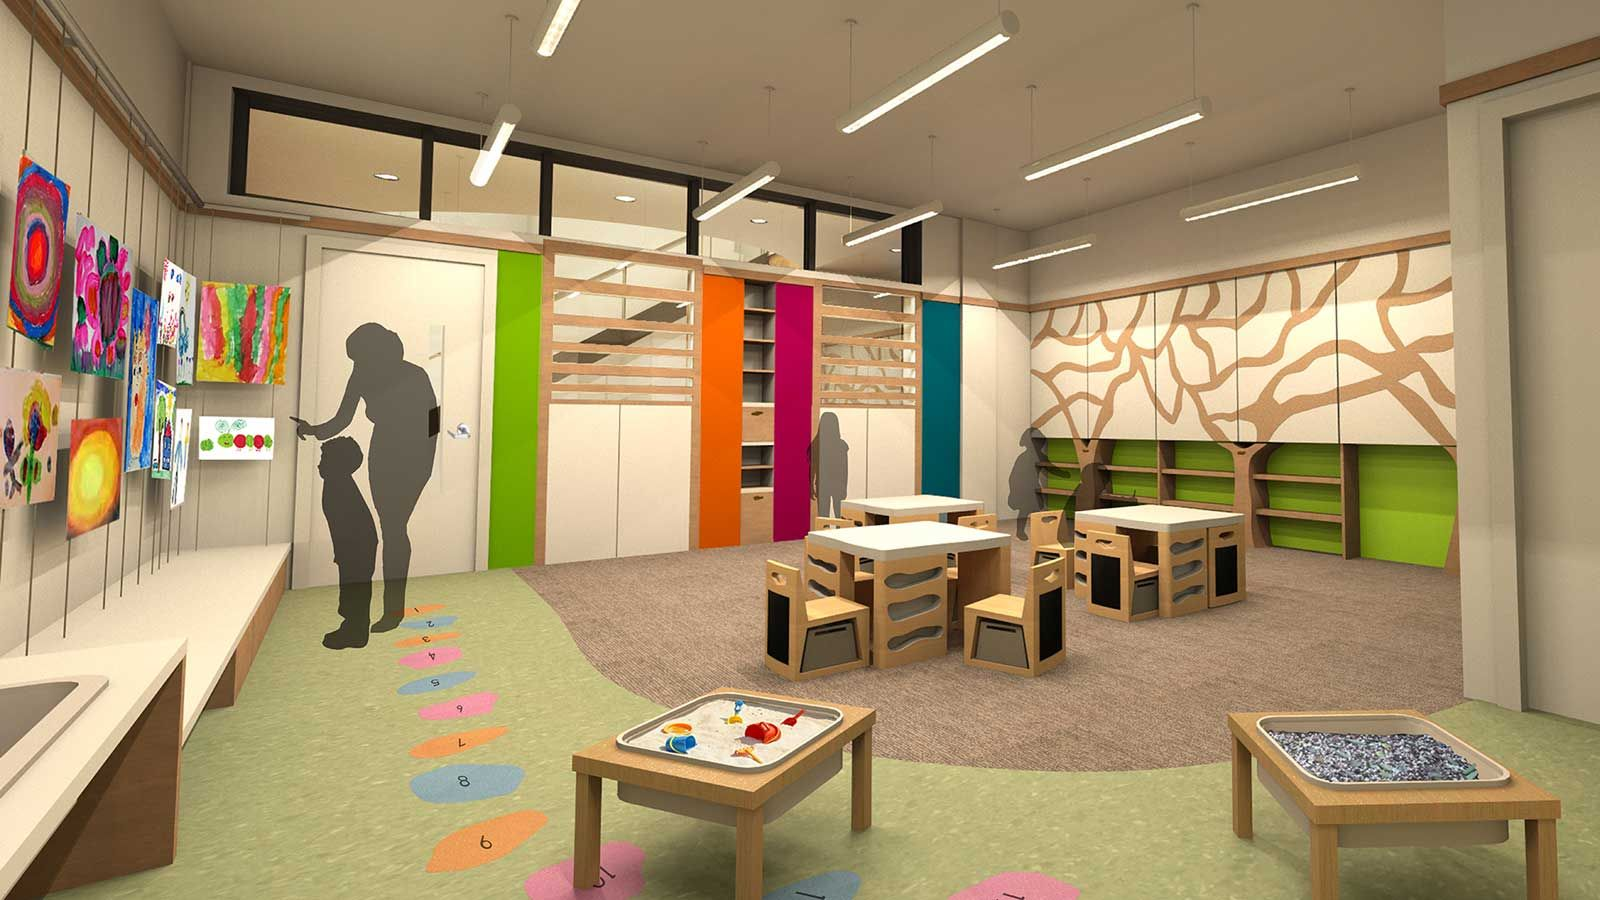 best interior design school modern interior kids classroom school design - Classroom Design Ideas